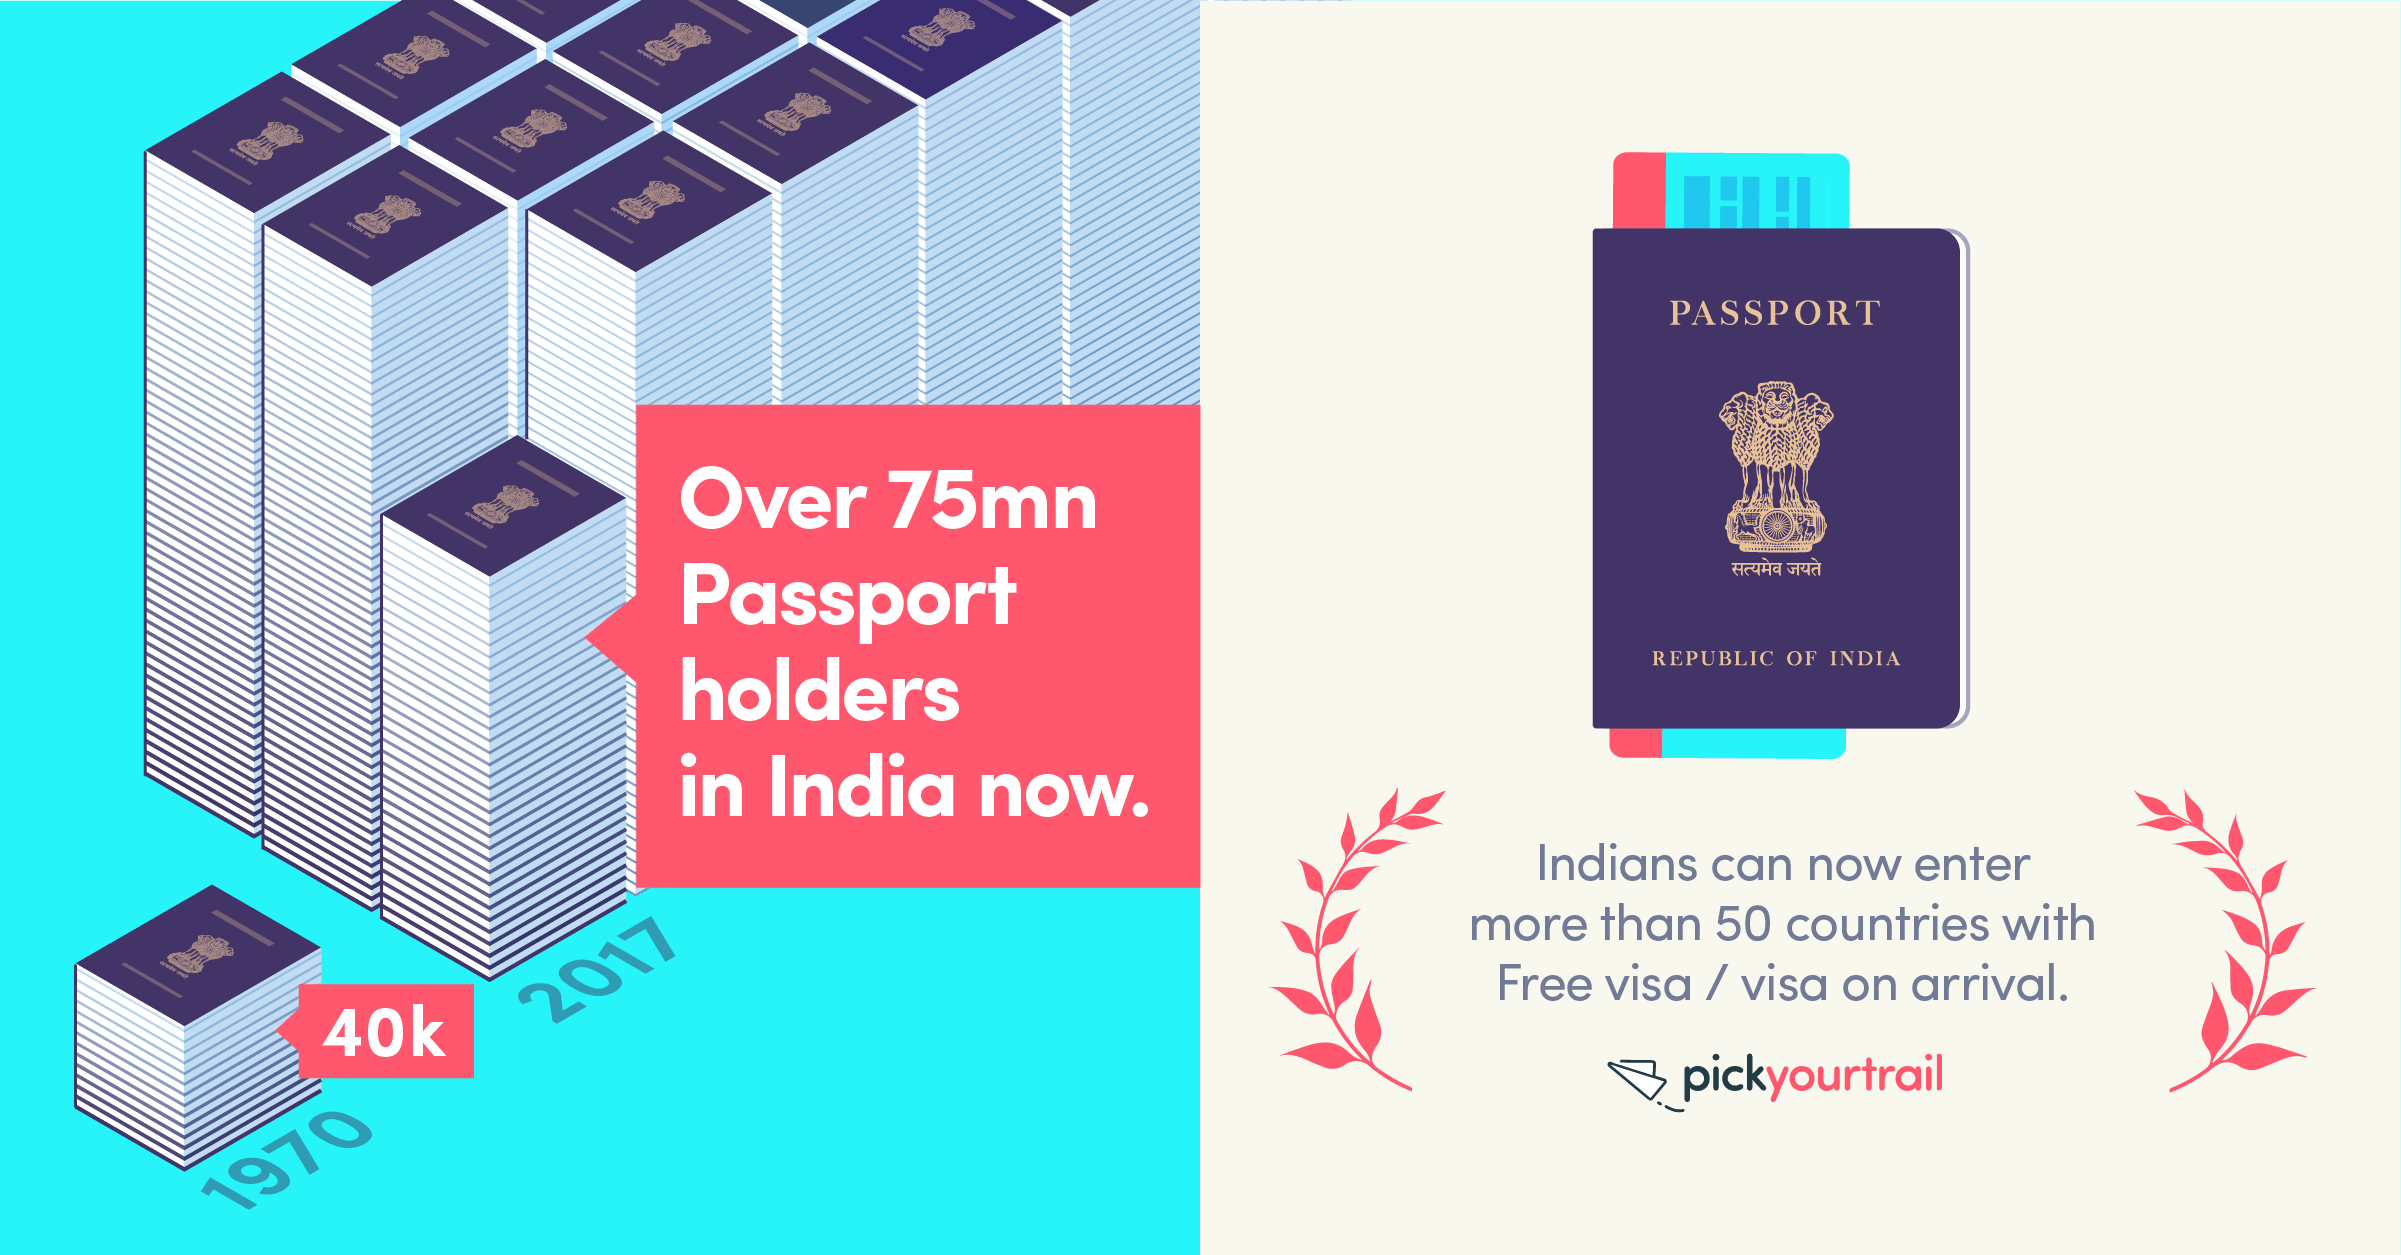 The little blue book aka the Indian Passport is all powerful. Access to 50+ visa-free countries and more!